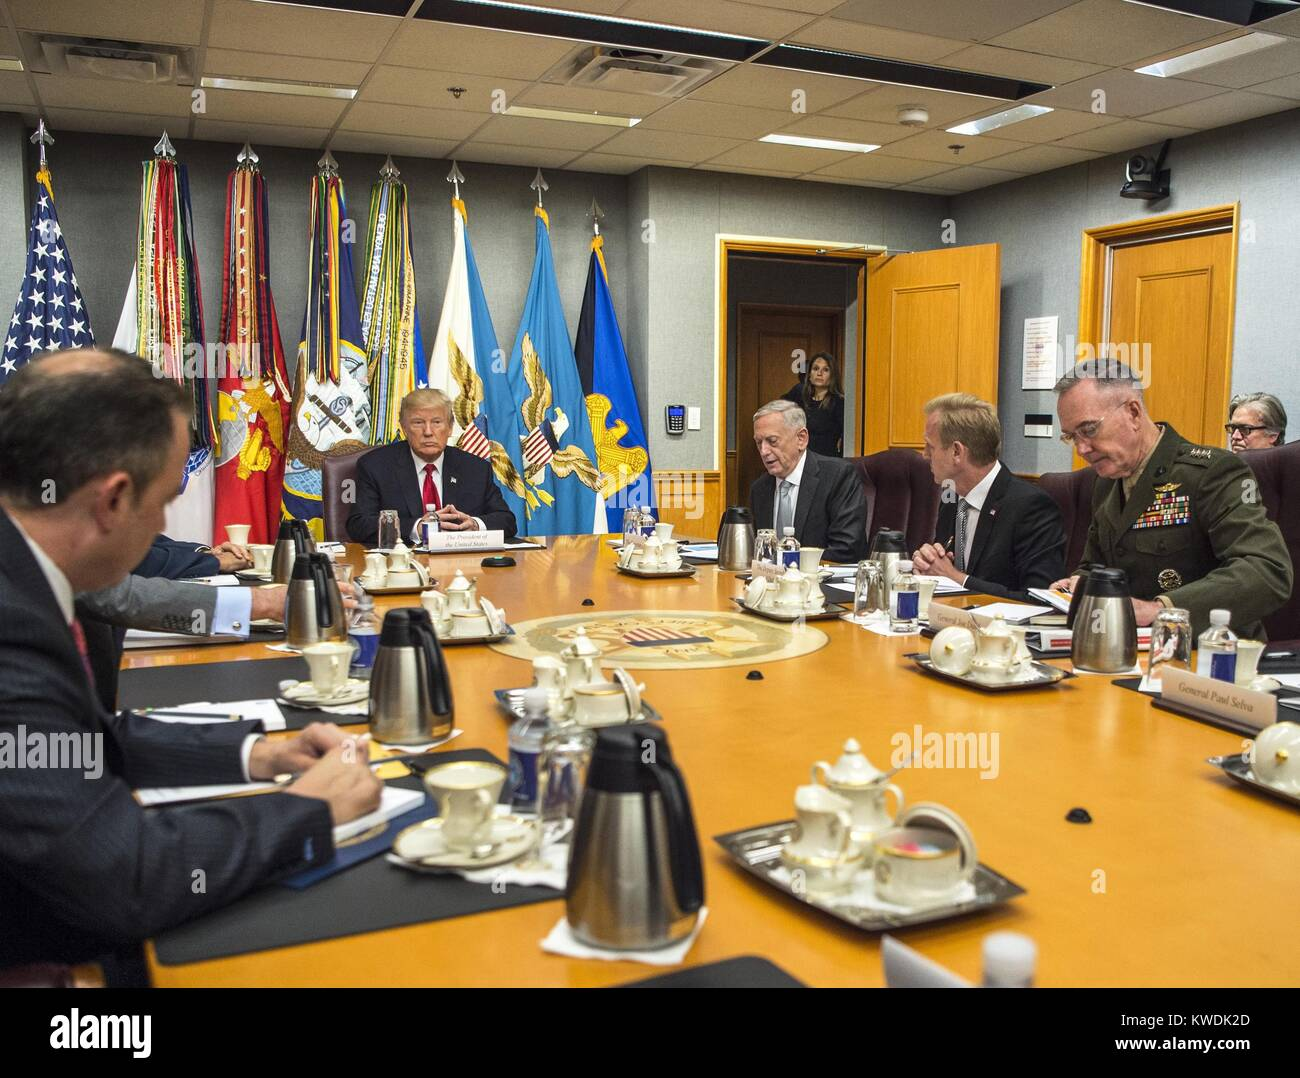 President Donald Trump meets with the National Security Council at the Pentagon, July 20, 2017 (BSLOC_2017_18_166) - Stock Image